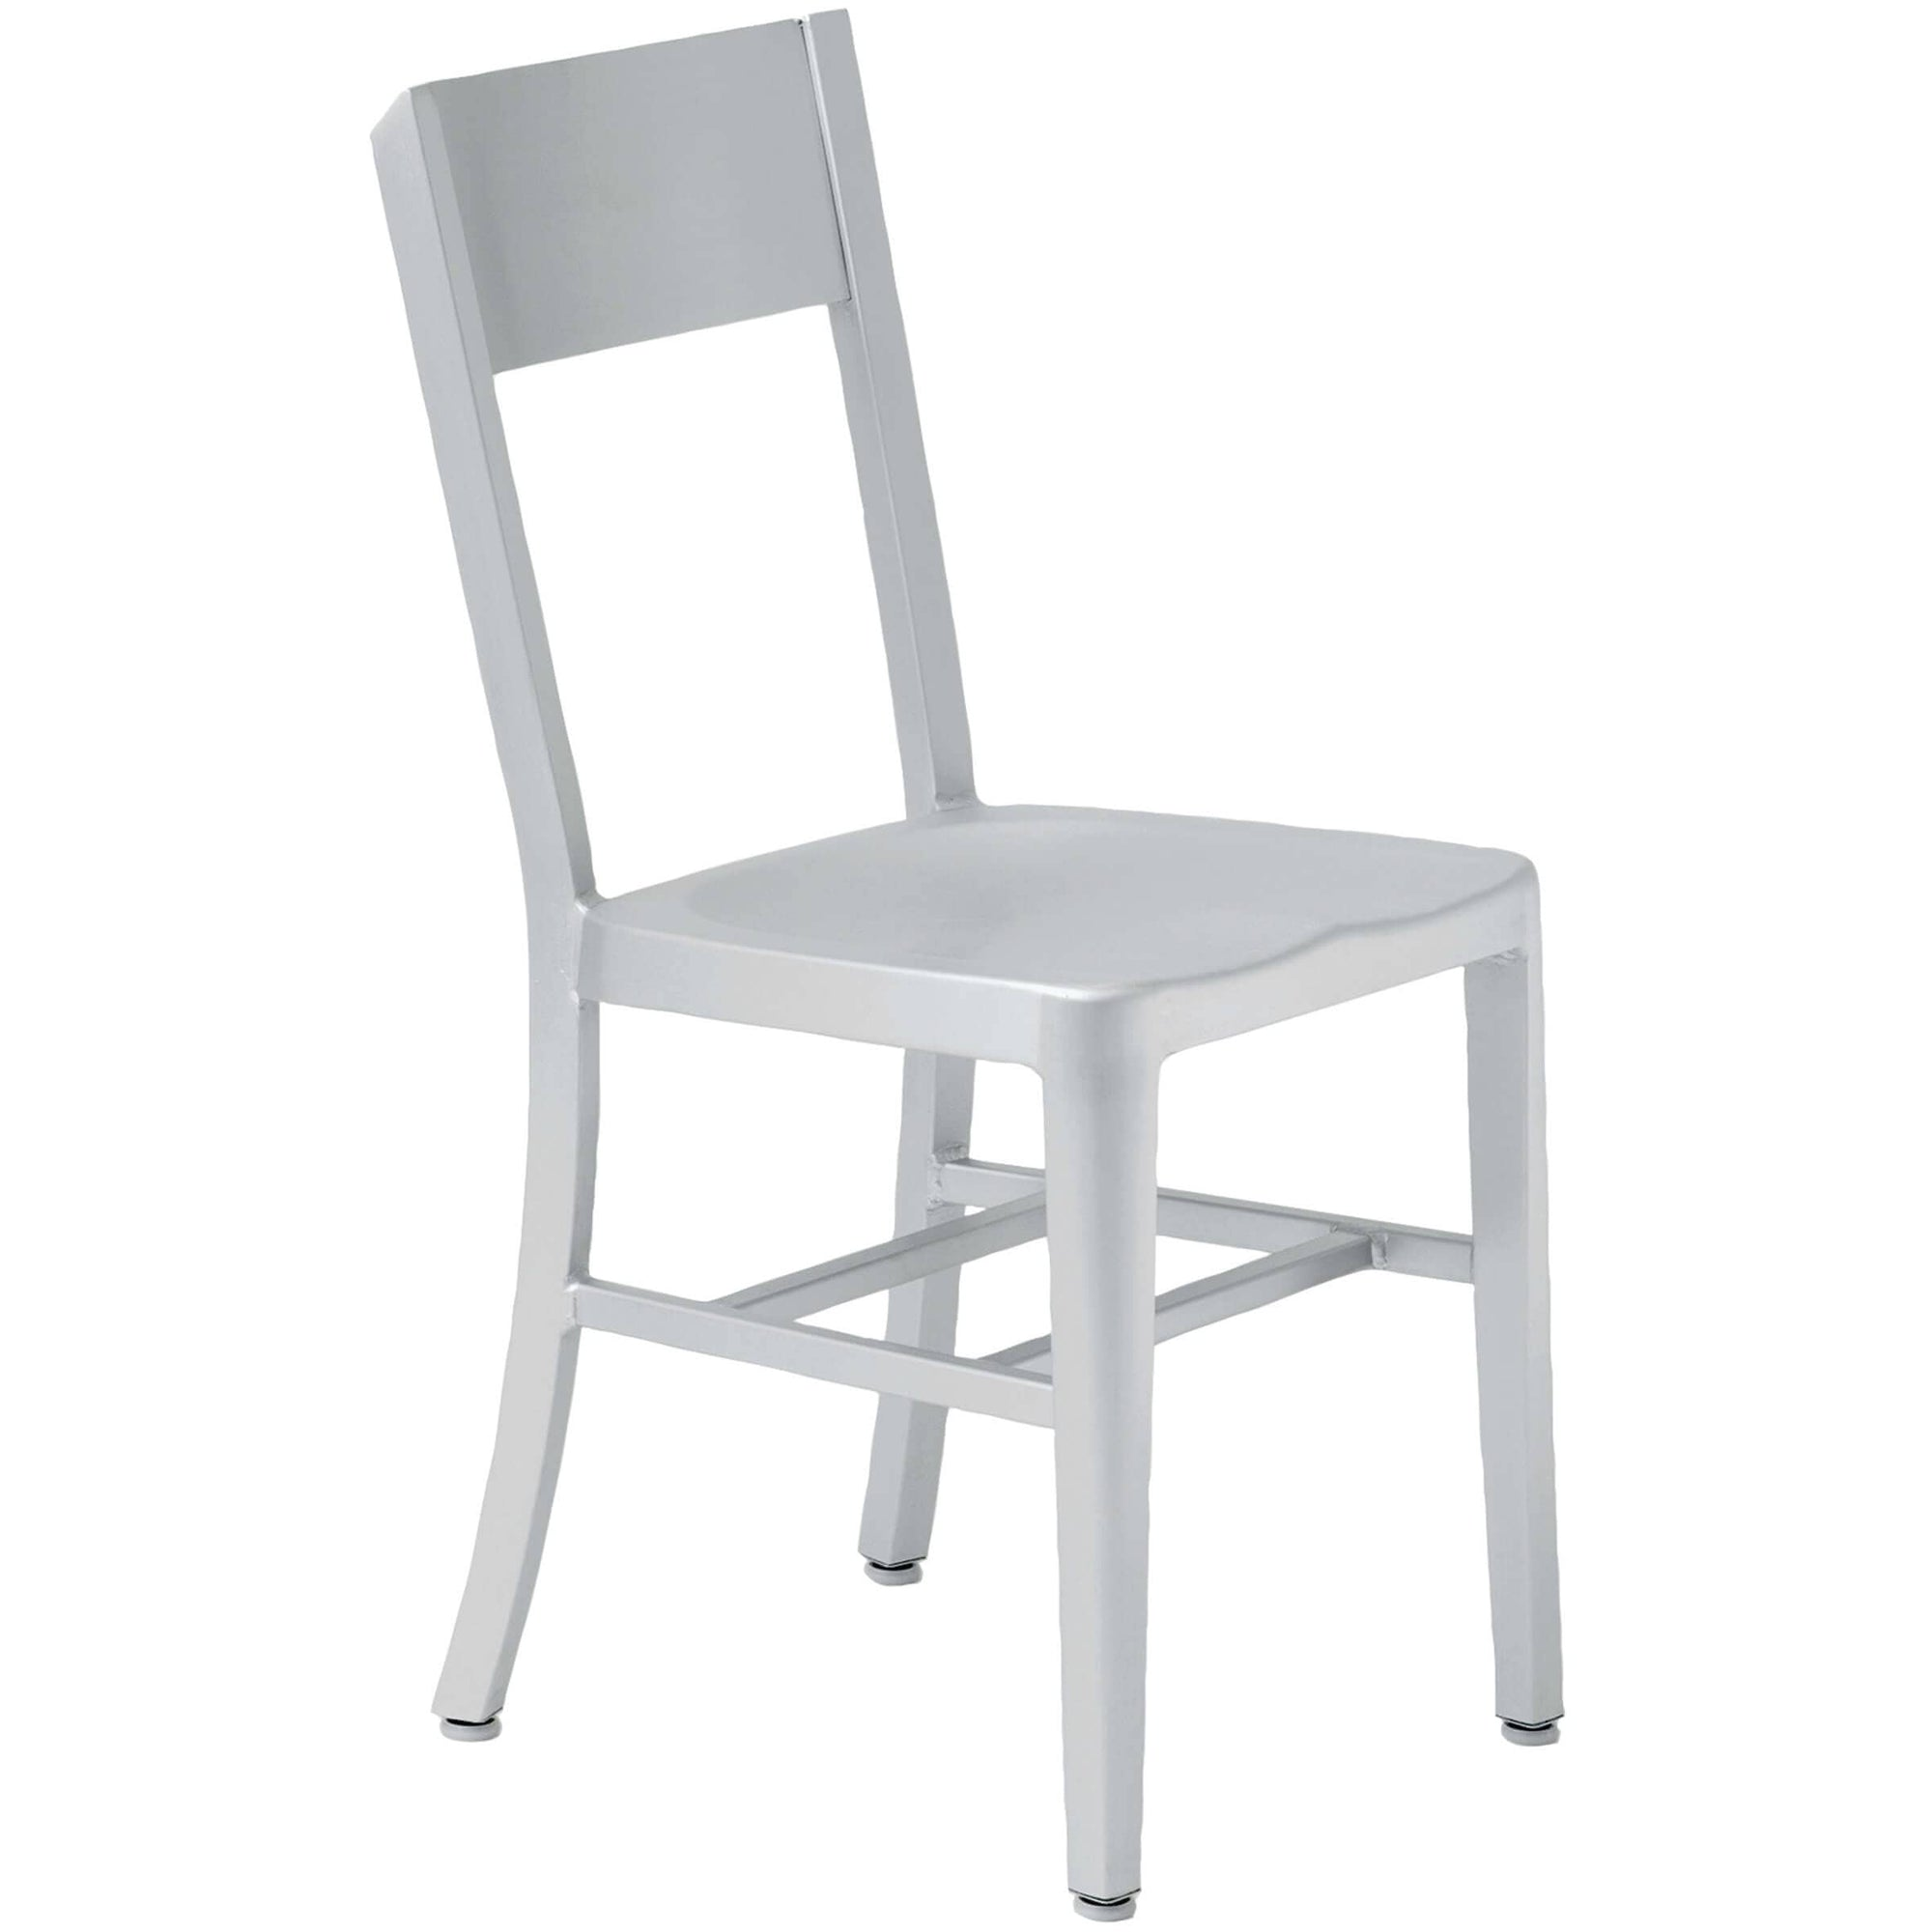 Astounding Tribecca Dining Chair High Fashion Home Alphanode Cool Chair Designs And Ideas Alphanodeonline